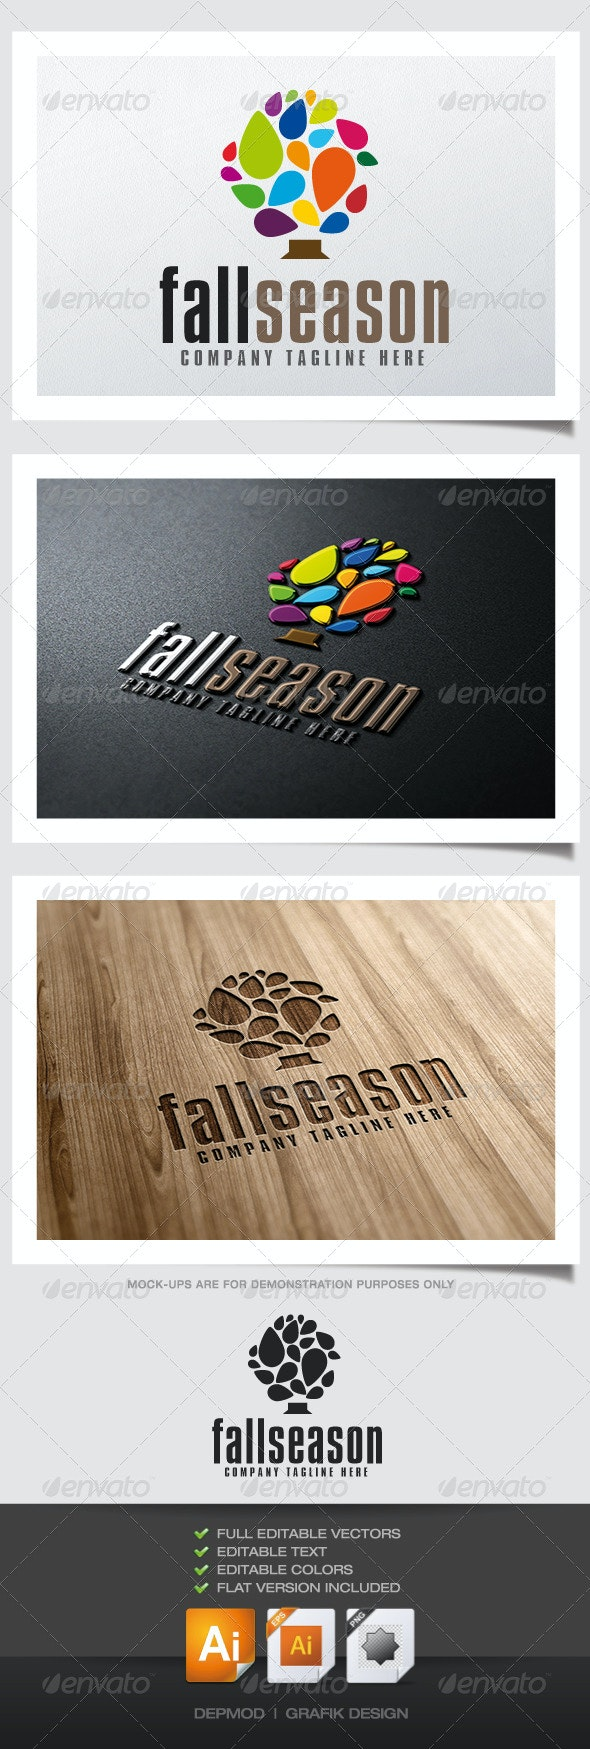 Fall Season Logo - Nature Logo Templates